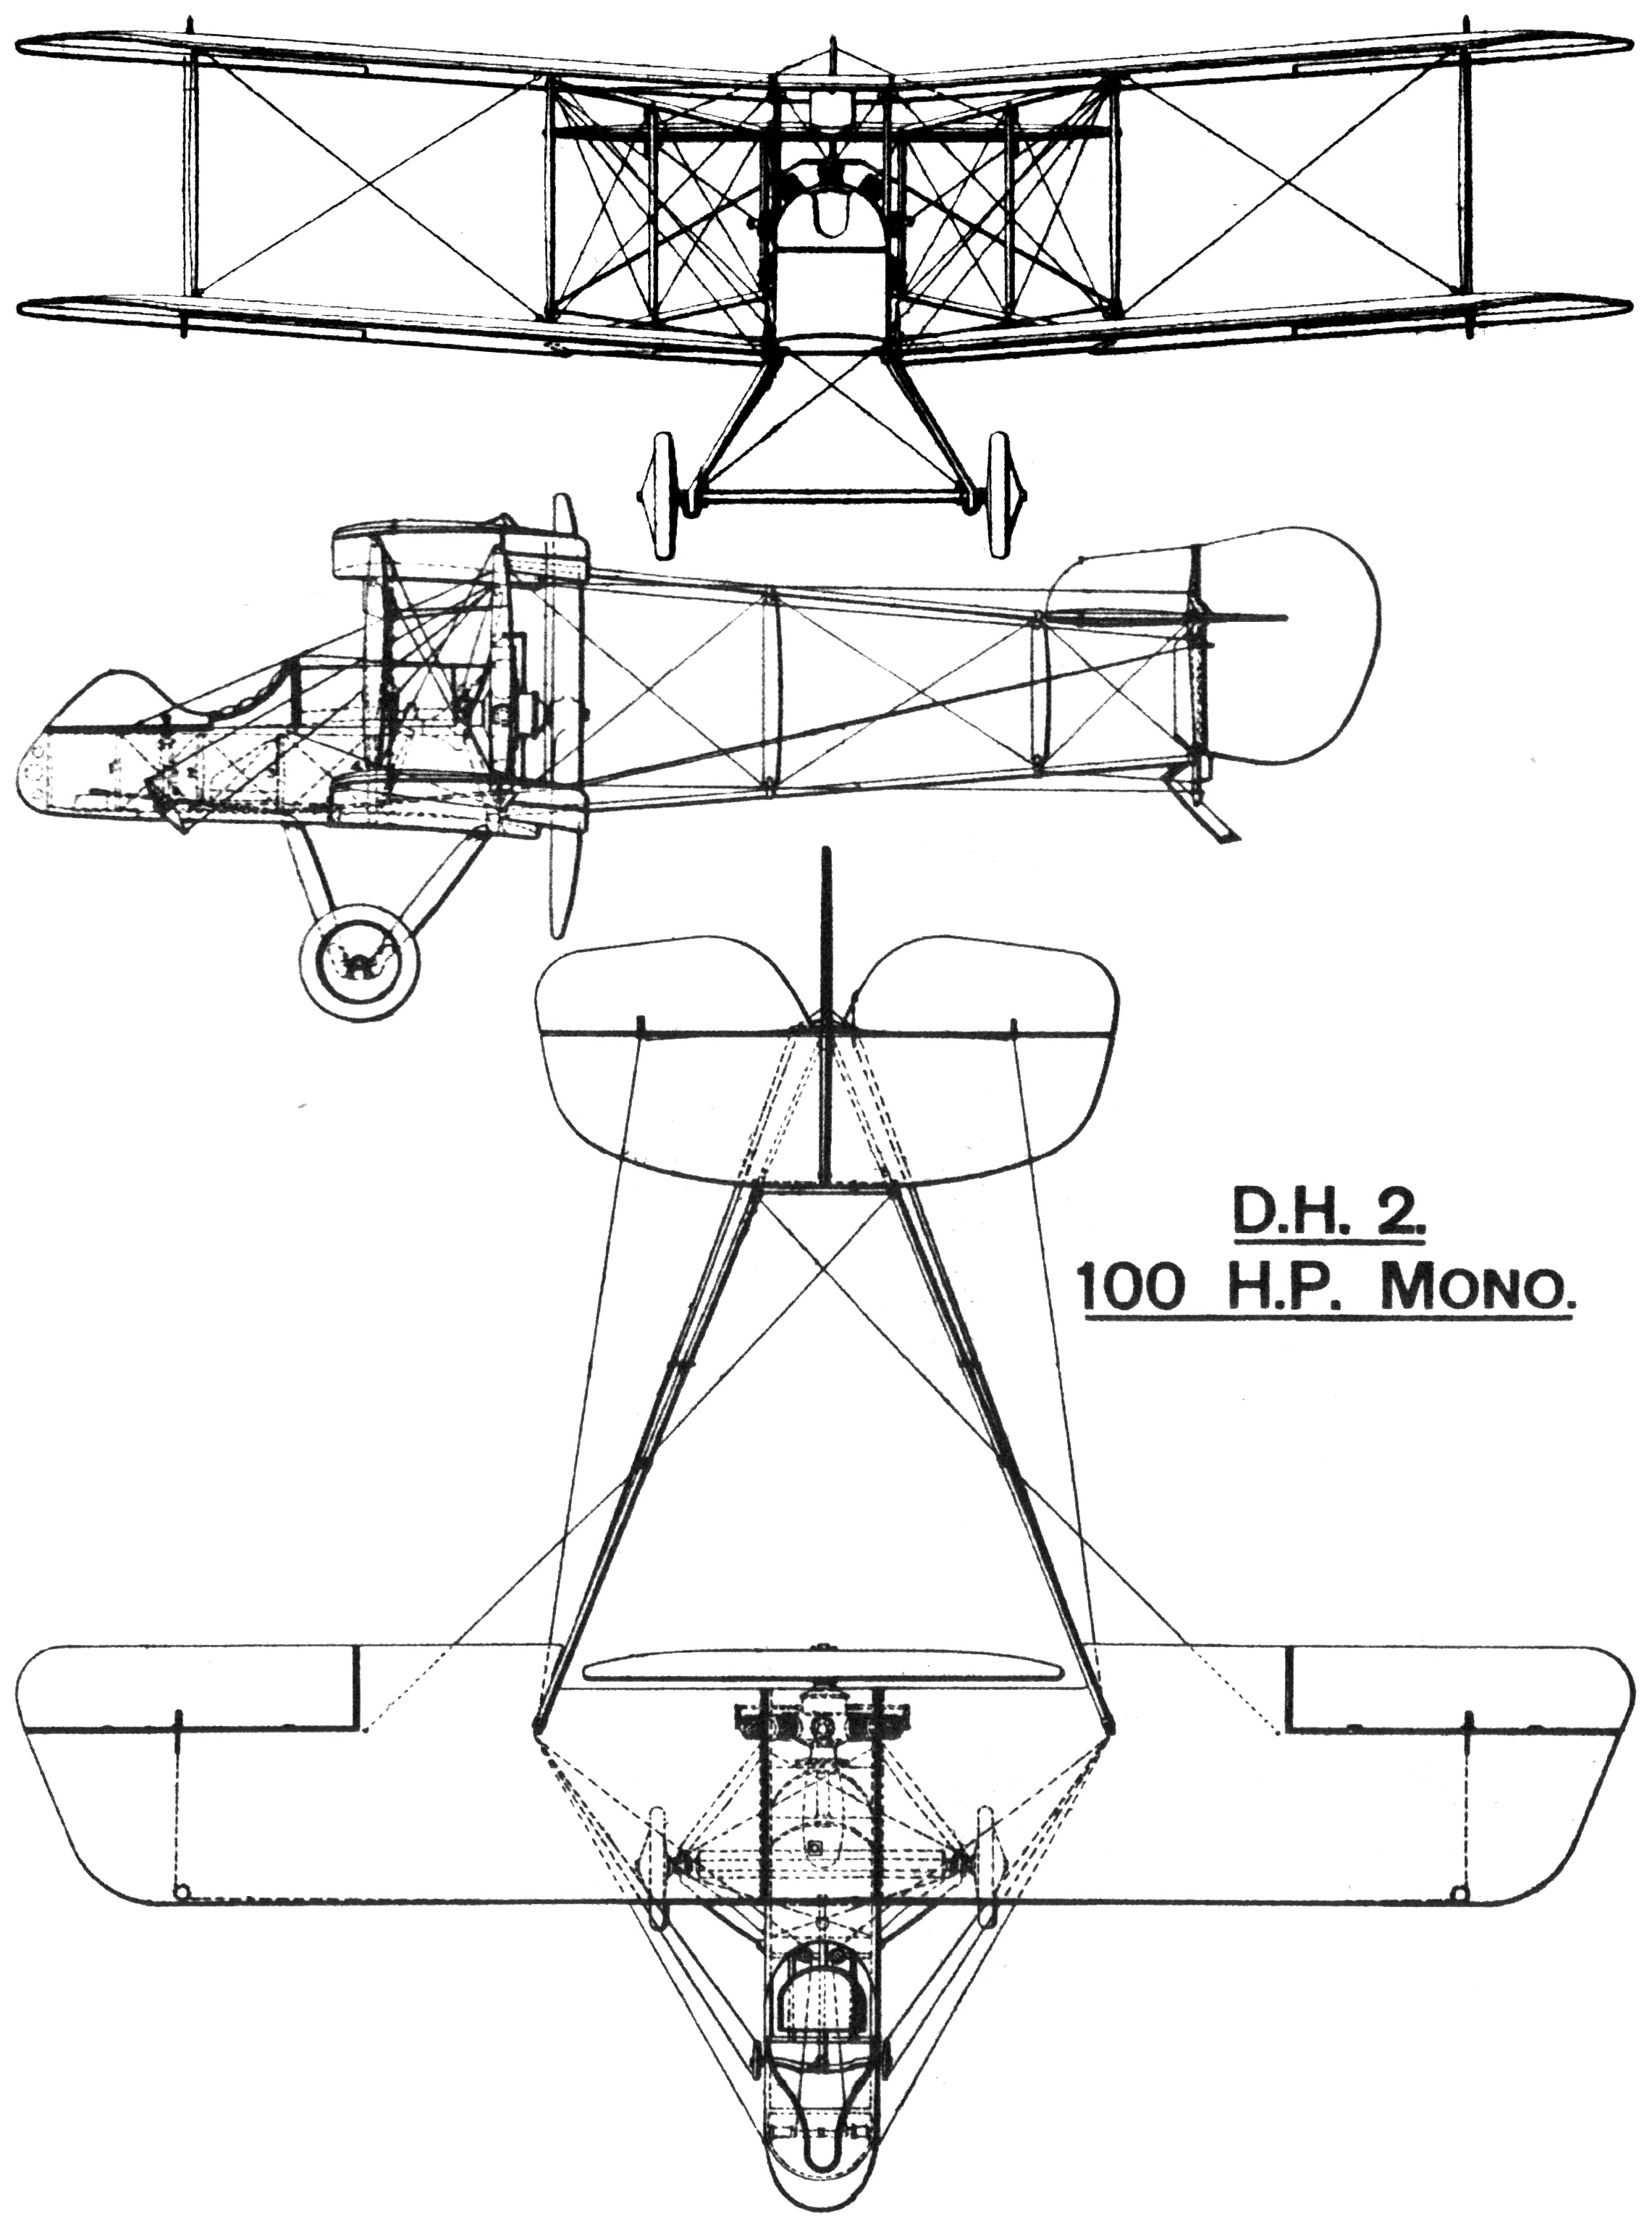 File:Airco D.H.2 British First World War single seat